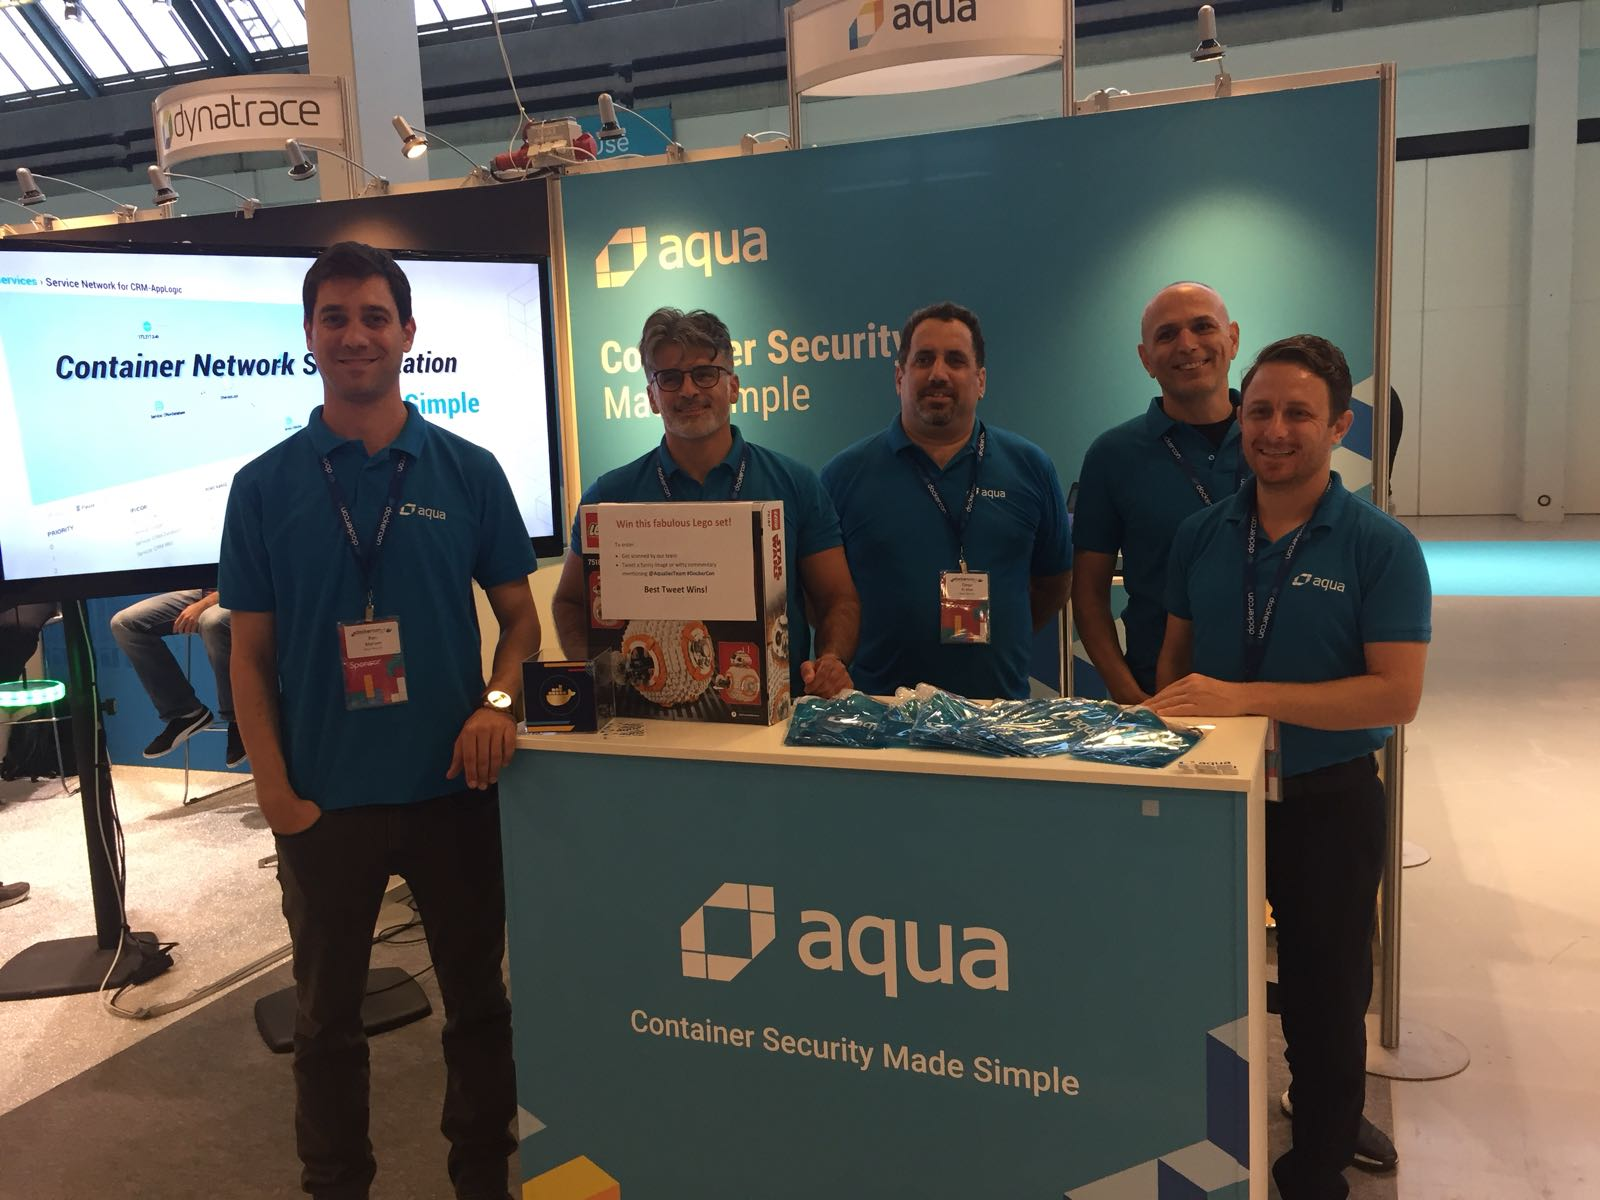 The Aqua team at DockerCon